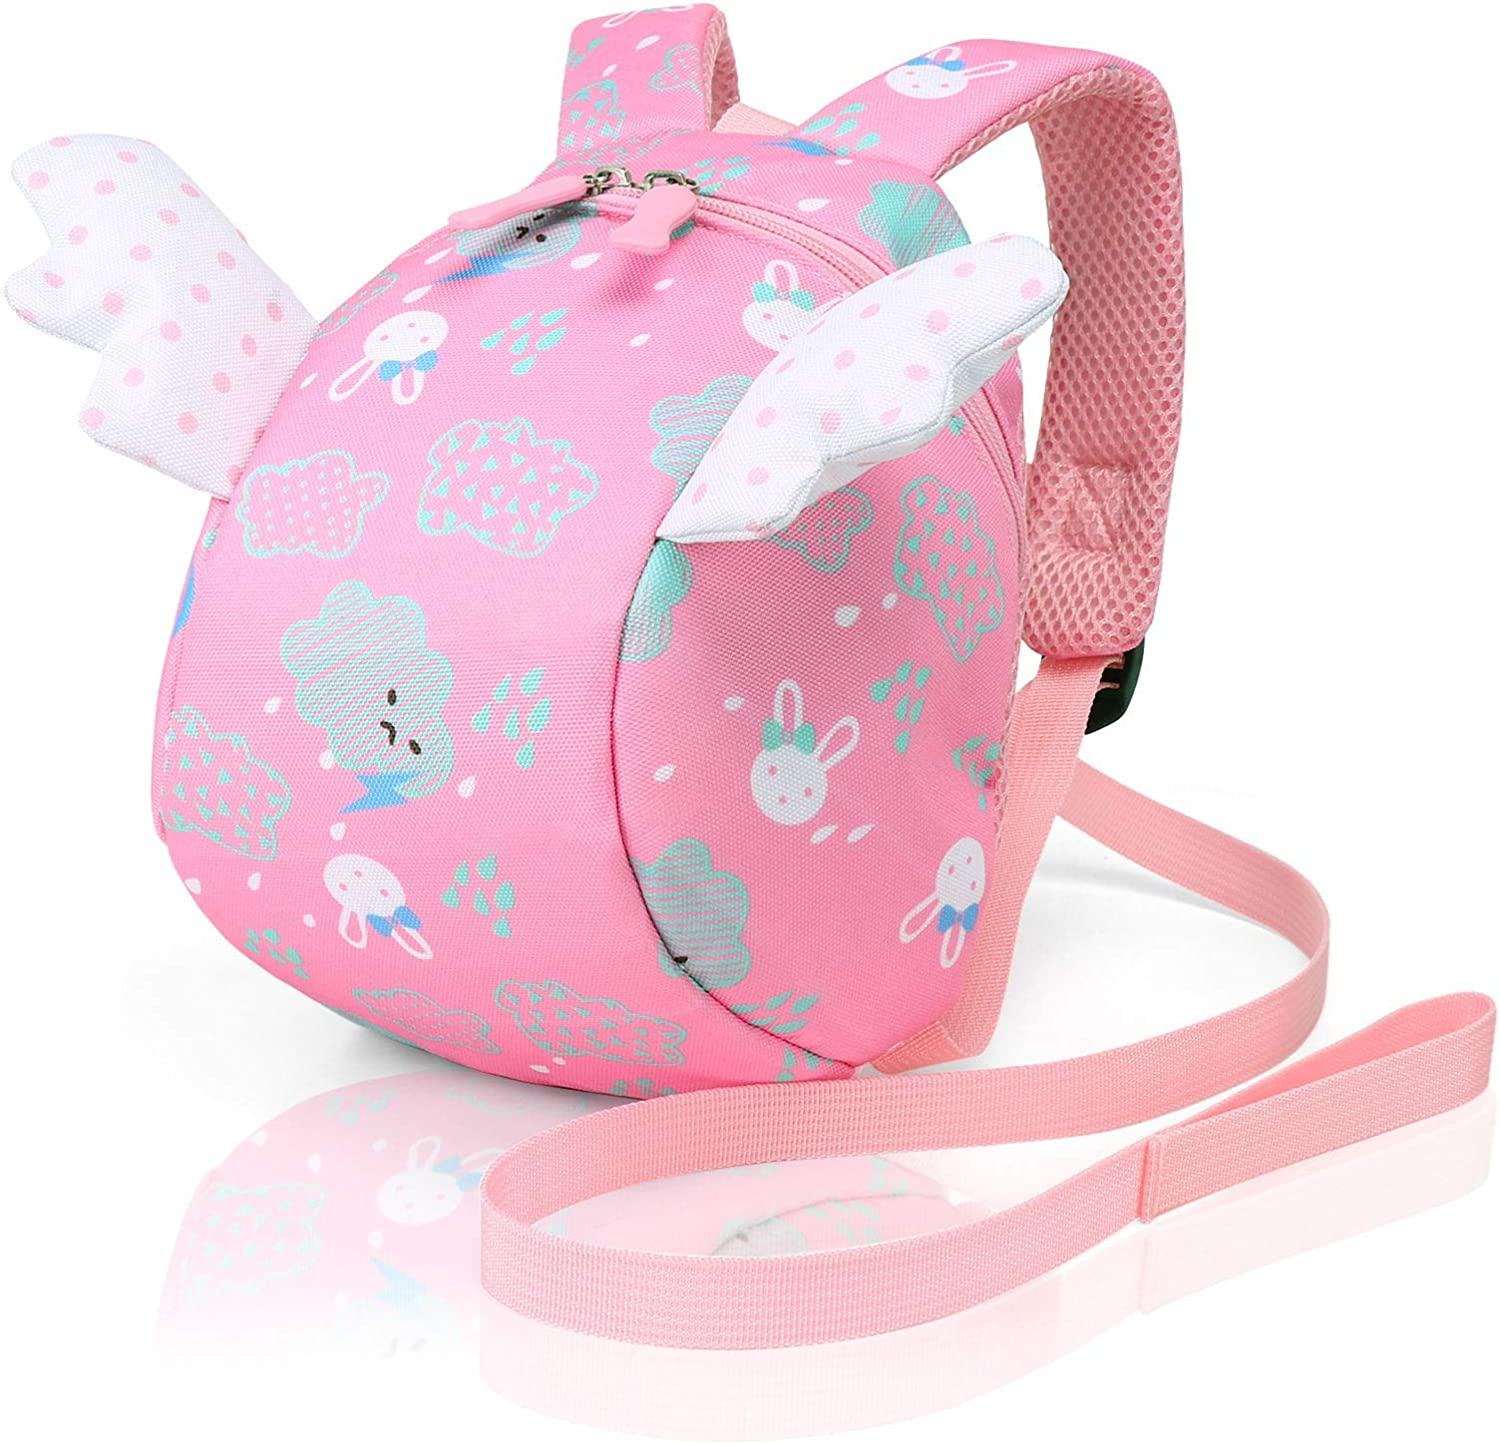 Cosyres Toddler Backpack with Leash,Kids Mini Safety Preschool Backpack for Girls Bunny Pink